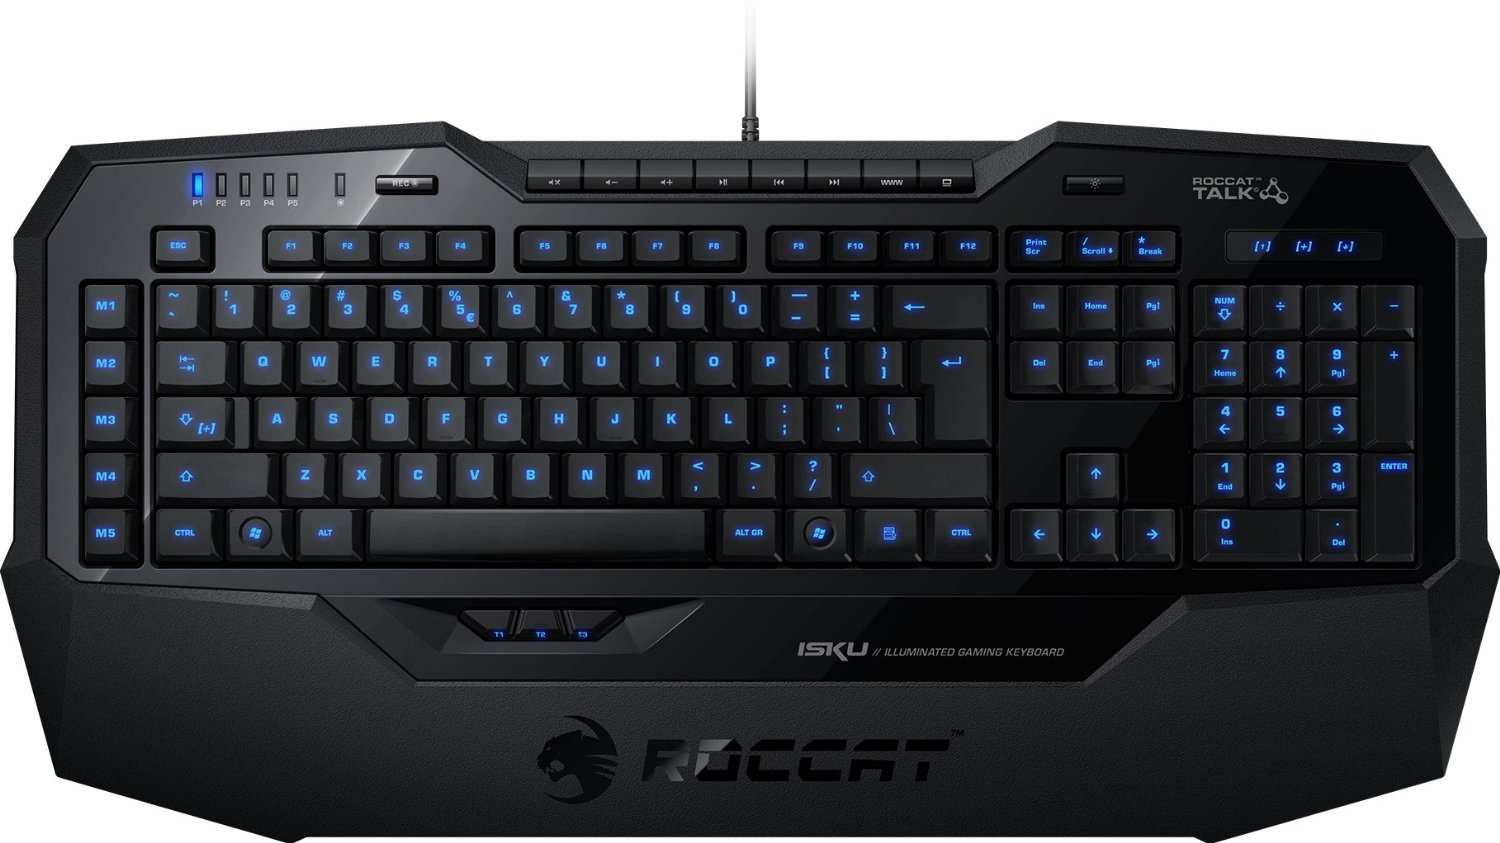 Roccat Isku Illuminated